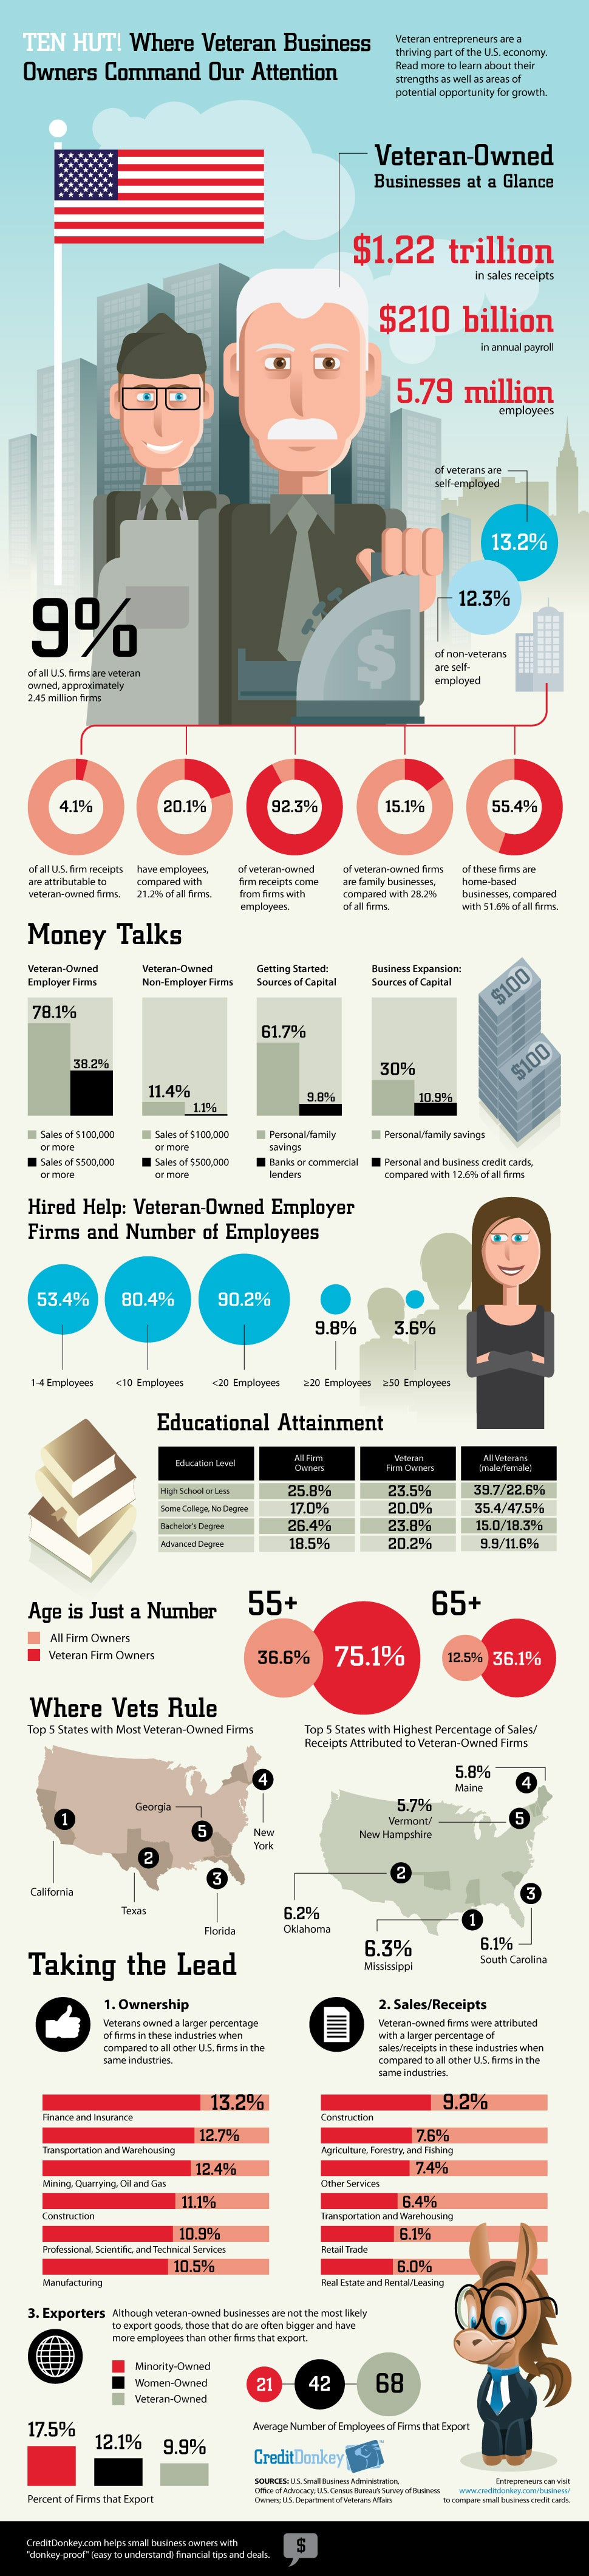 By the Numbers: U.S. Veteran-Owned Businesses (Infographic)